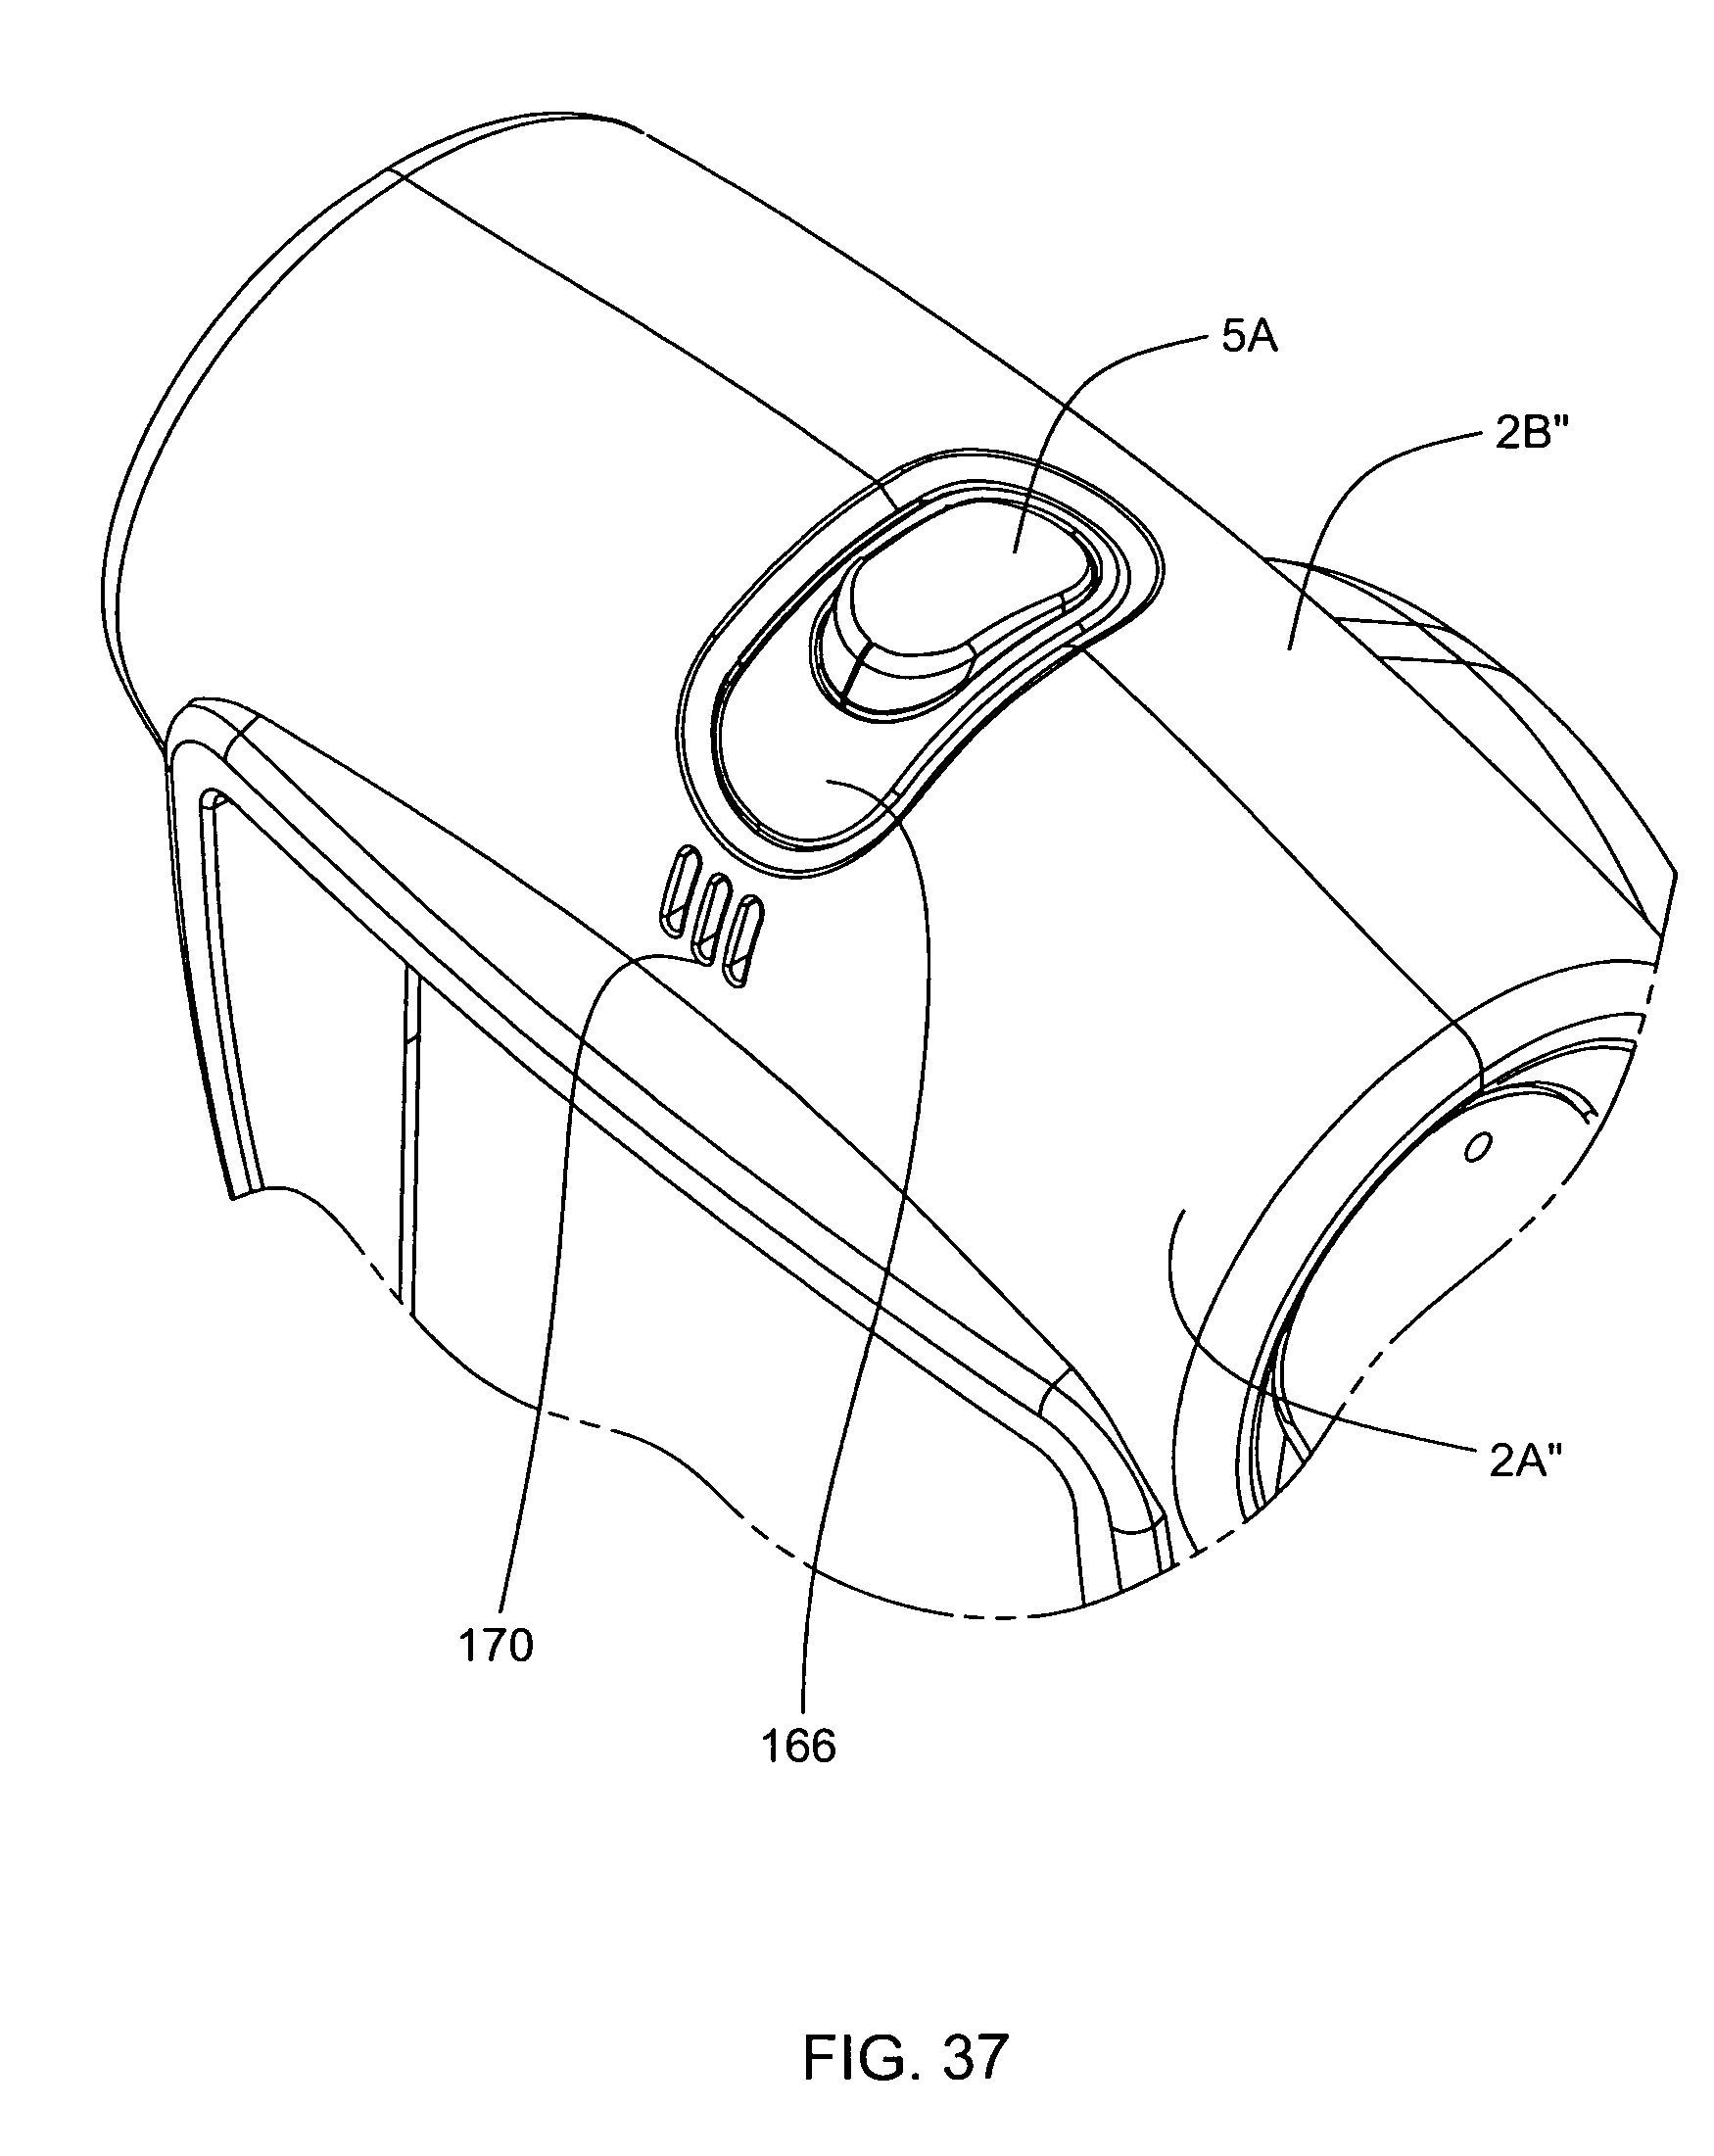 patent us 7 922 089 b2 125 HP Force Outboard patent images